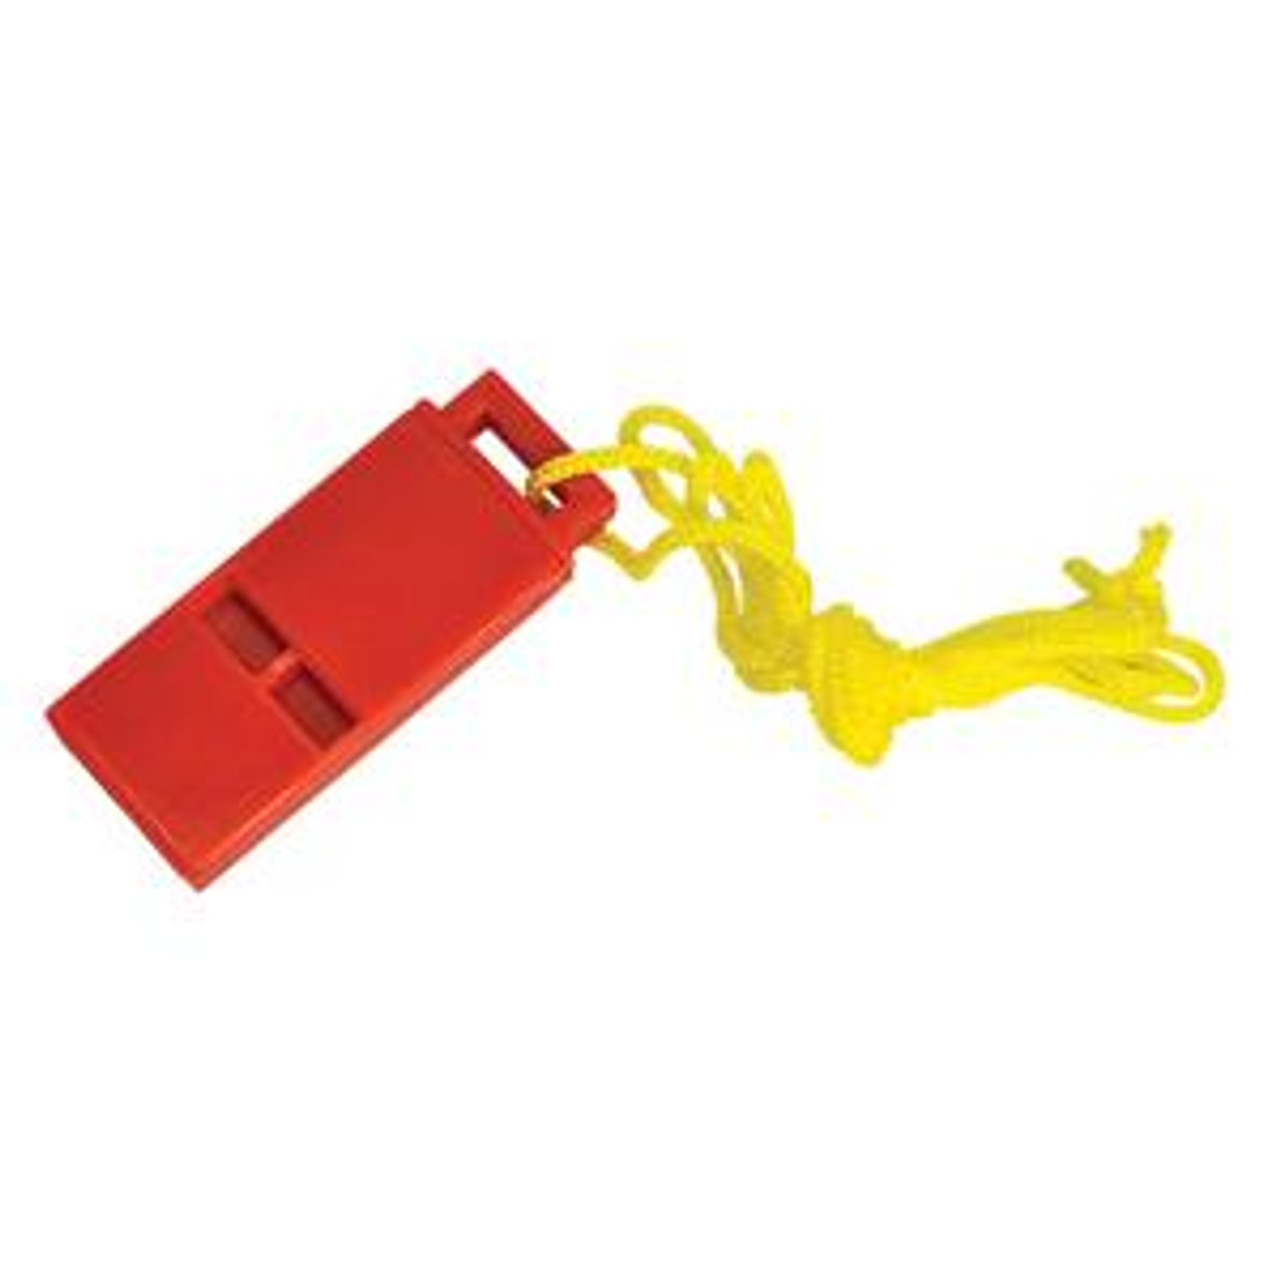 Red Plastic whistle with Lanyard.